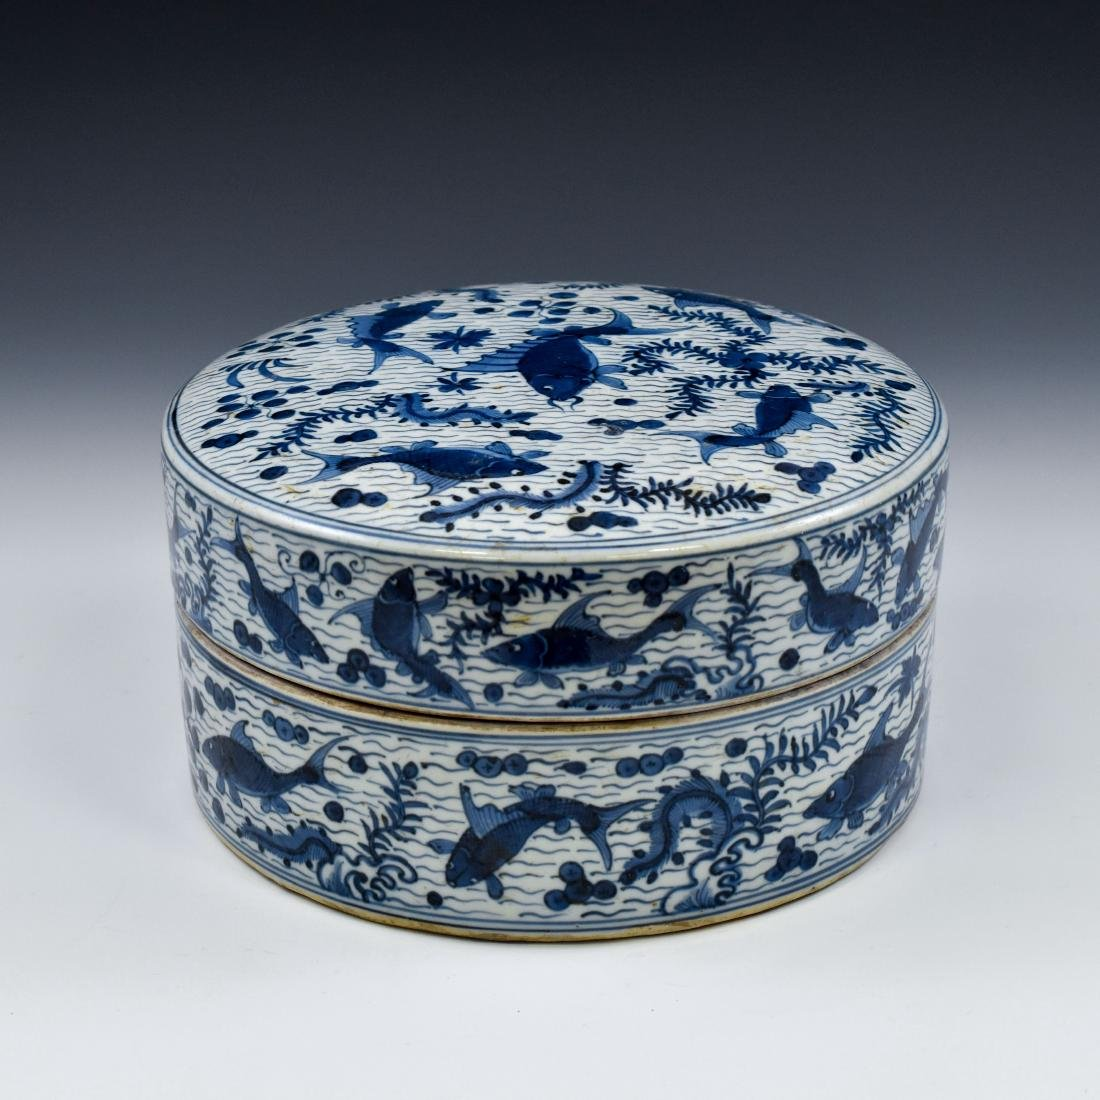 MING BLUE & WHITE ROUND PORCELAIN BOX